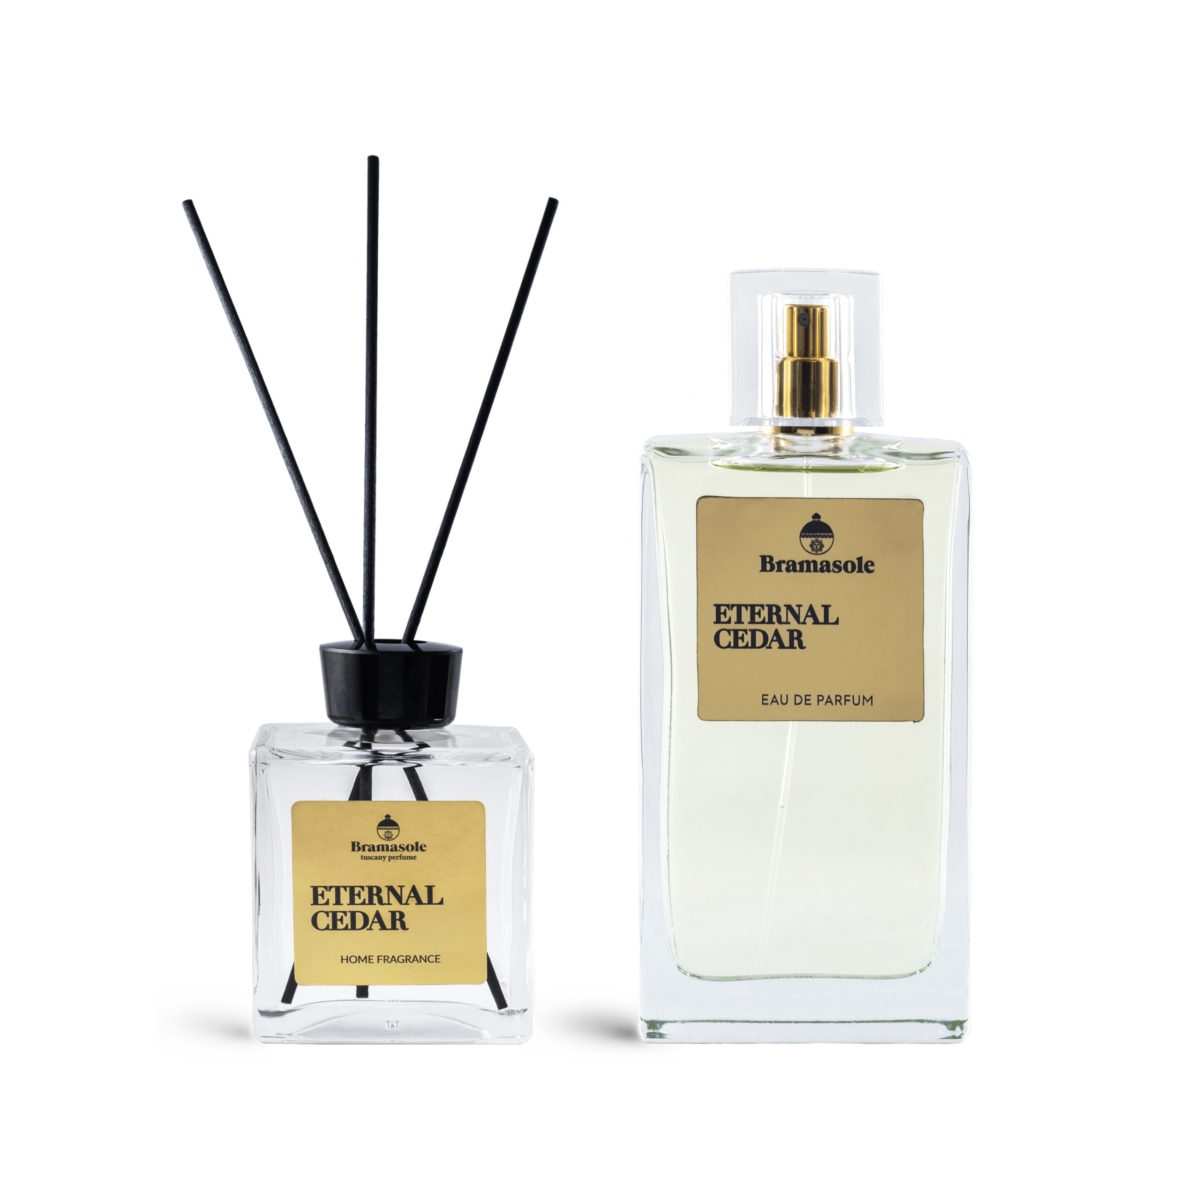 Eternal Cedar Perfume and Home